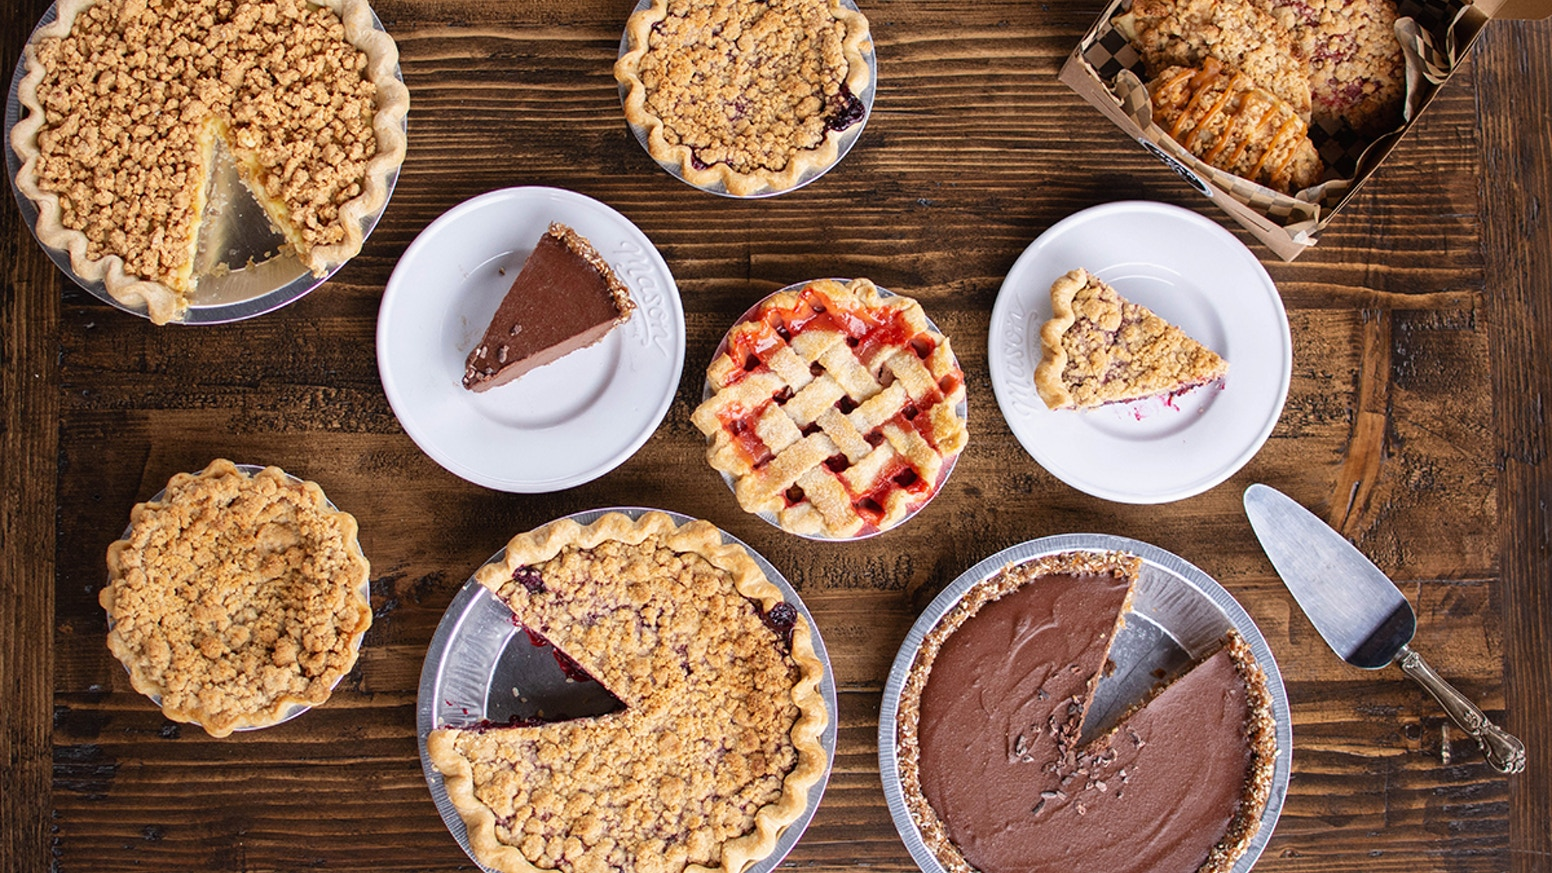 We're planning to open a shop in Coeur d'Alene. With your support, we'll serve delicious coffee and farm-to-table pie!